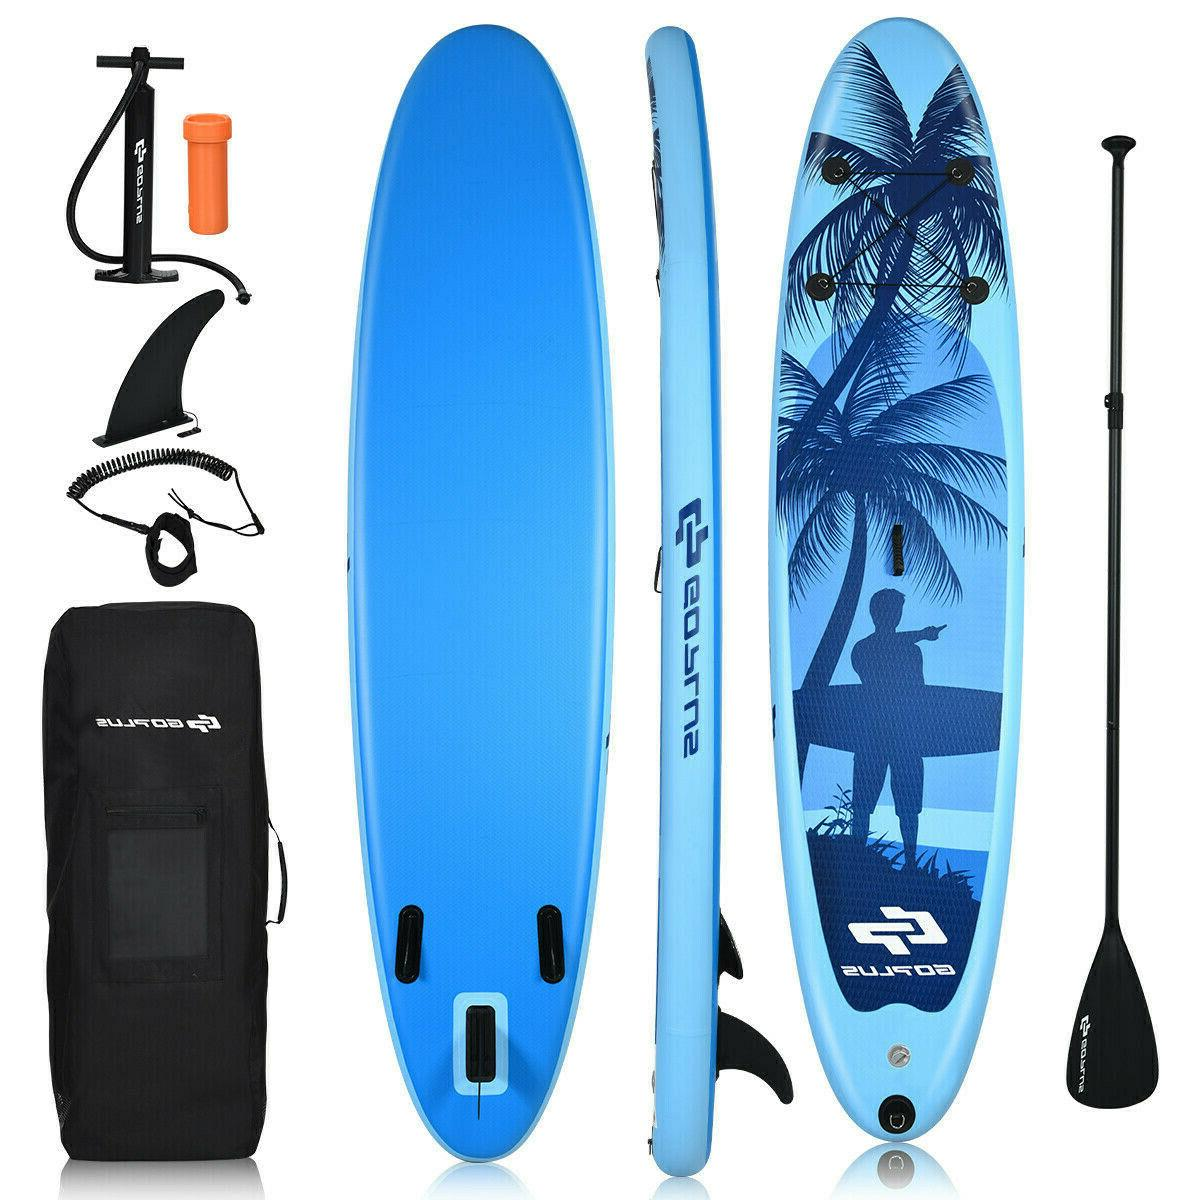 11 Foot Inflatable Stand Up Paddle Board SUP Kayak Blue Surf